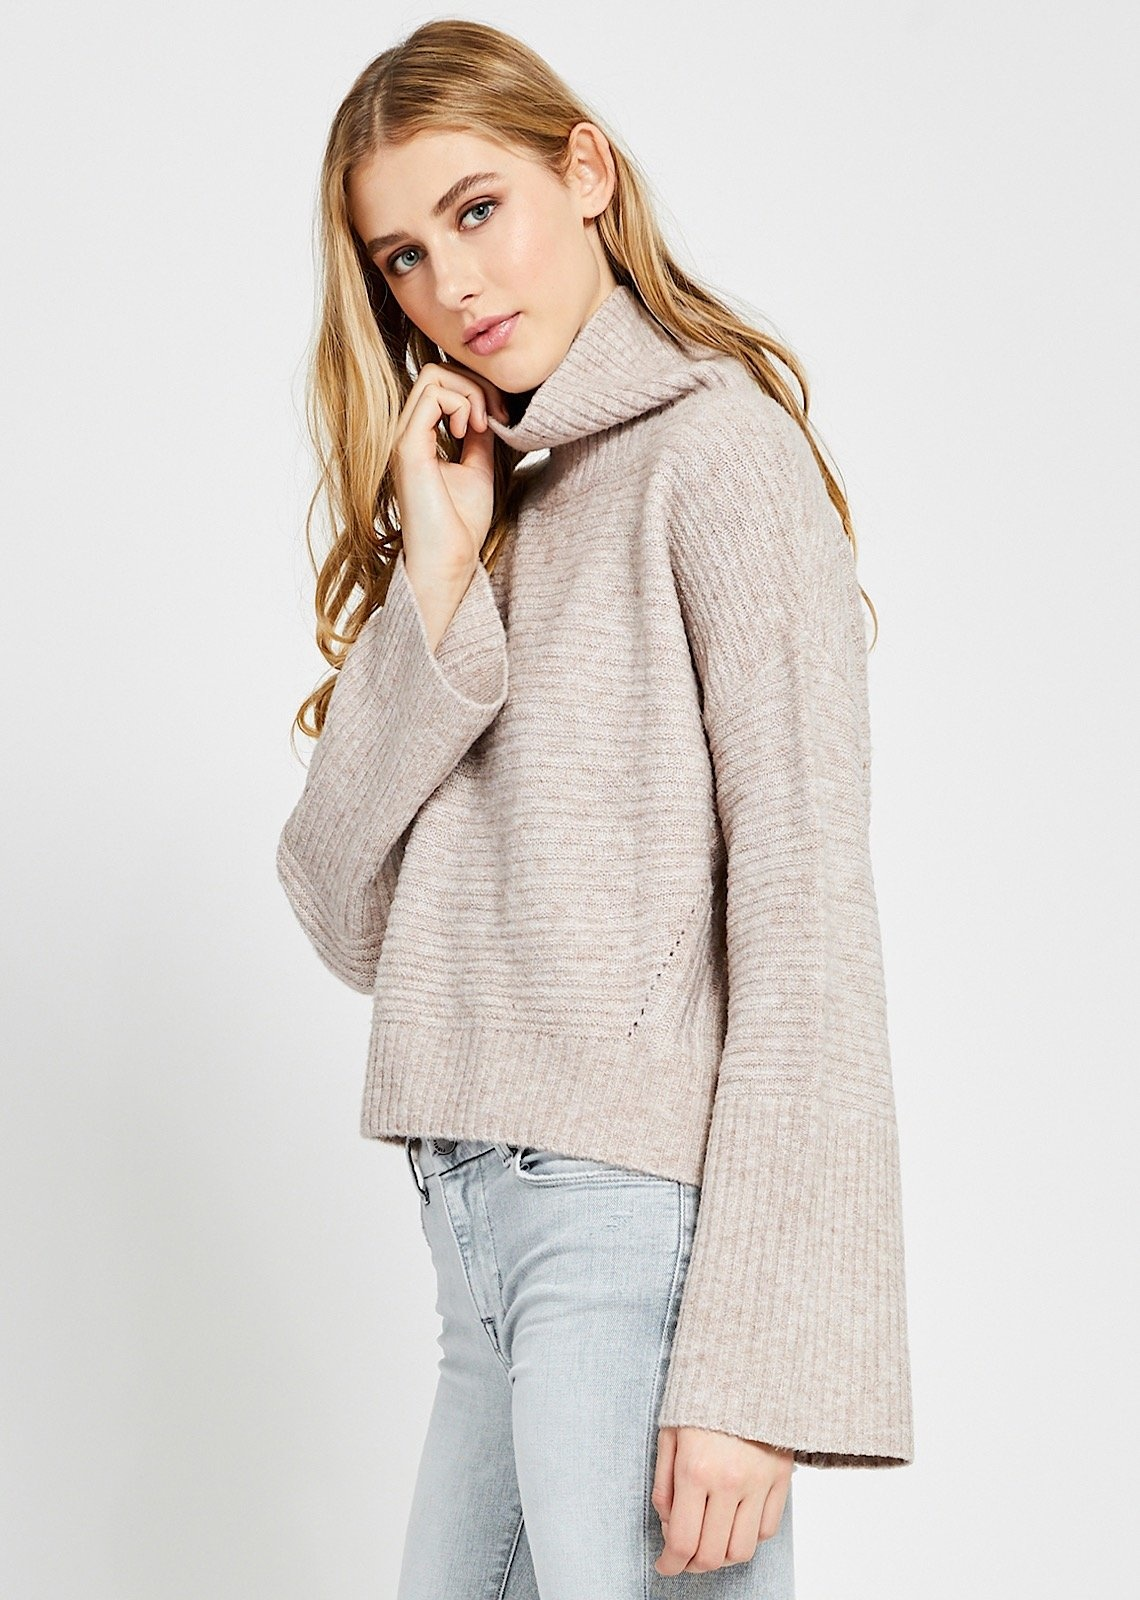 Gentlefawn Paris Sweater